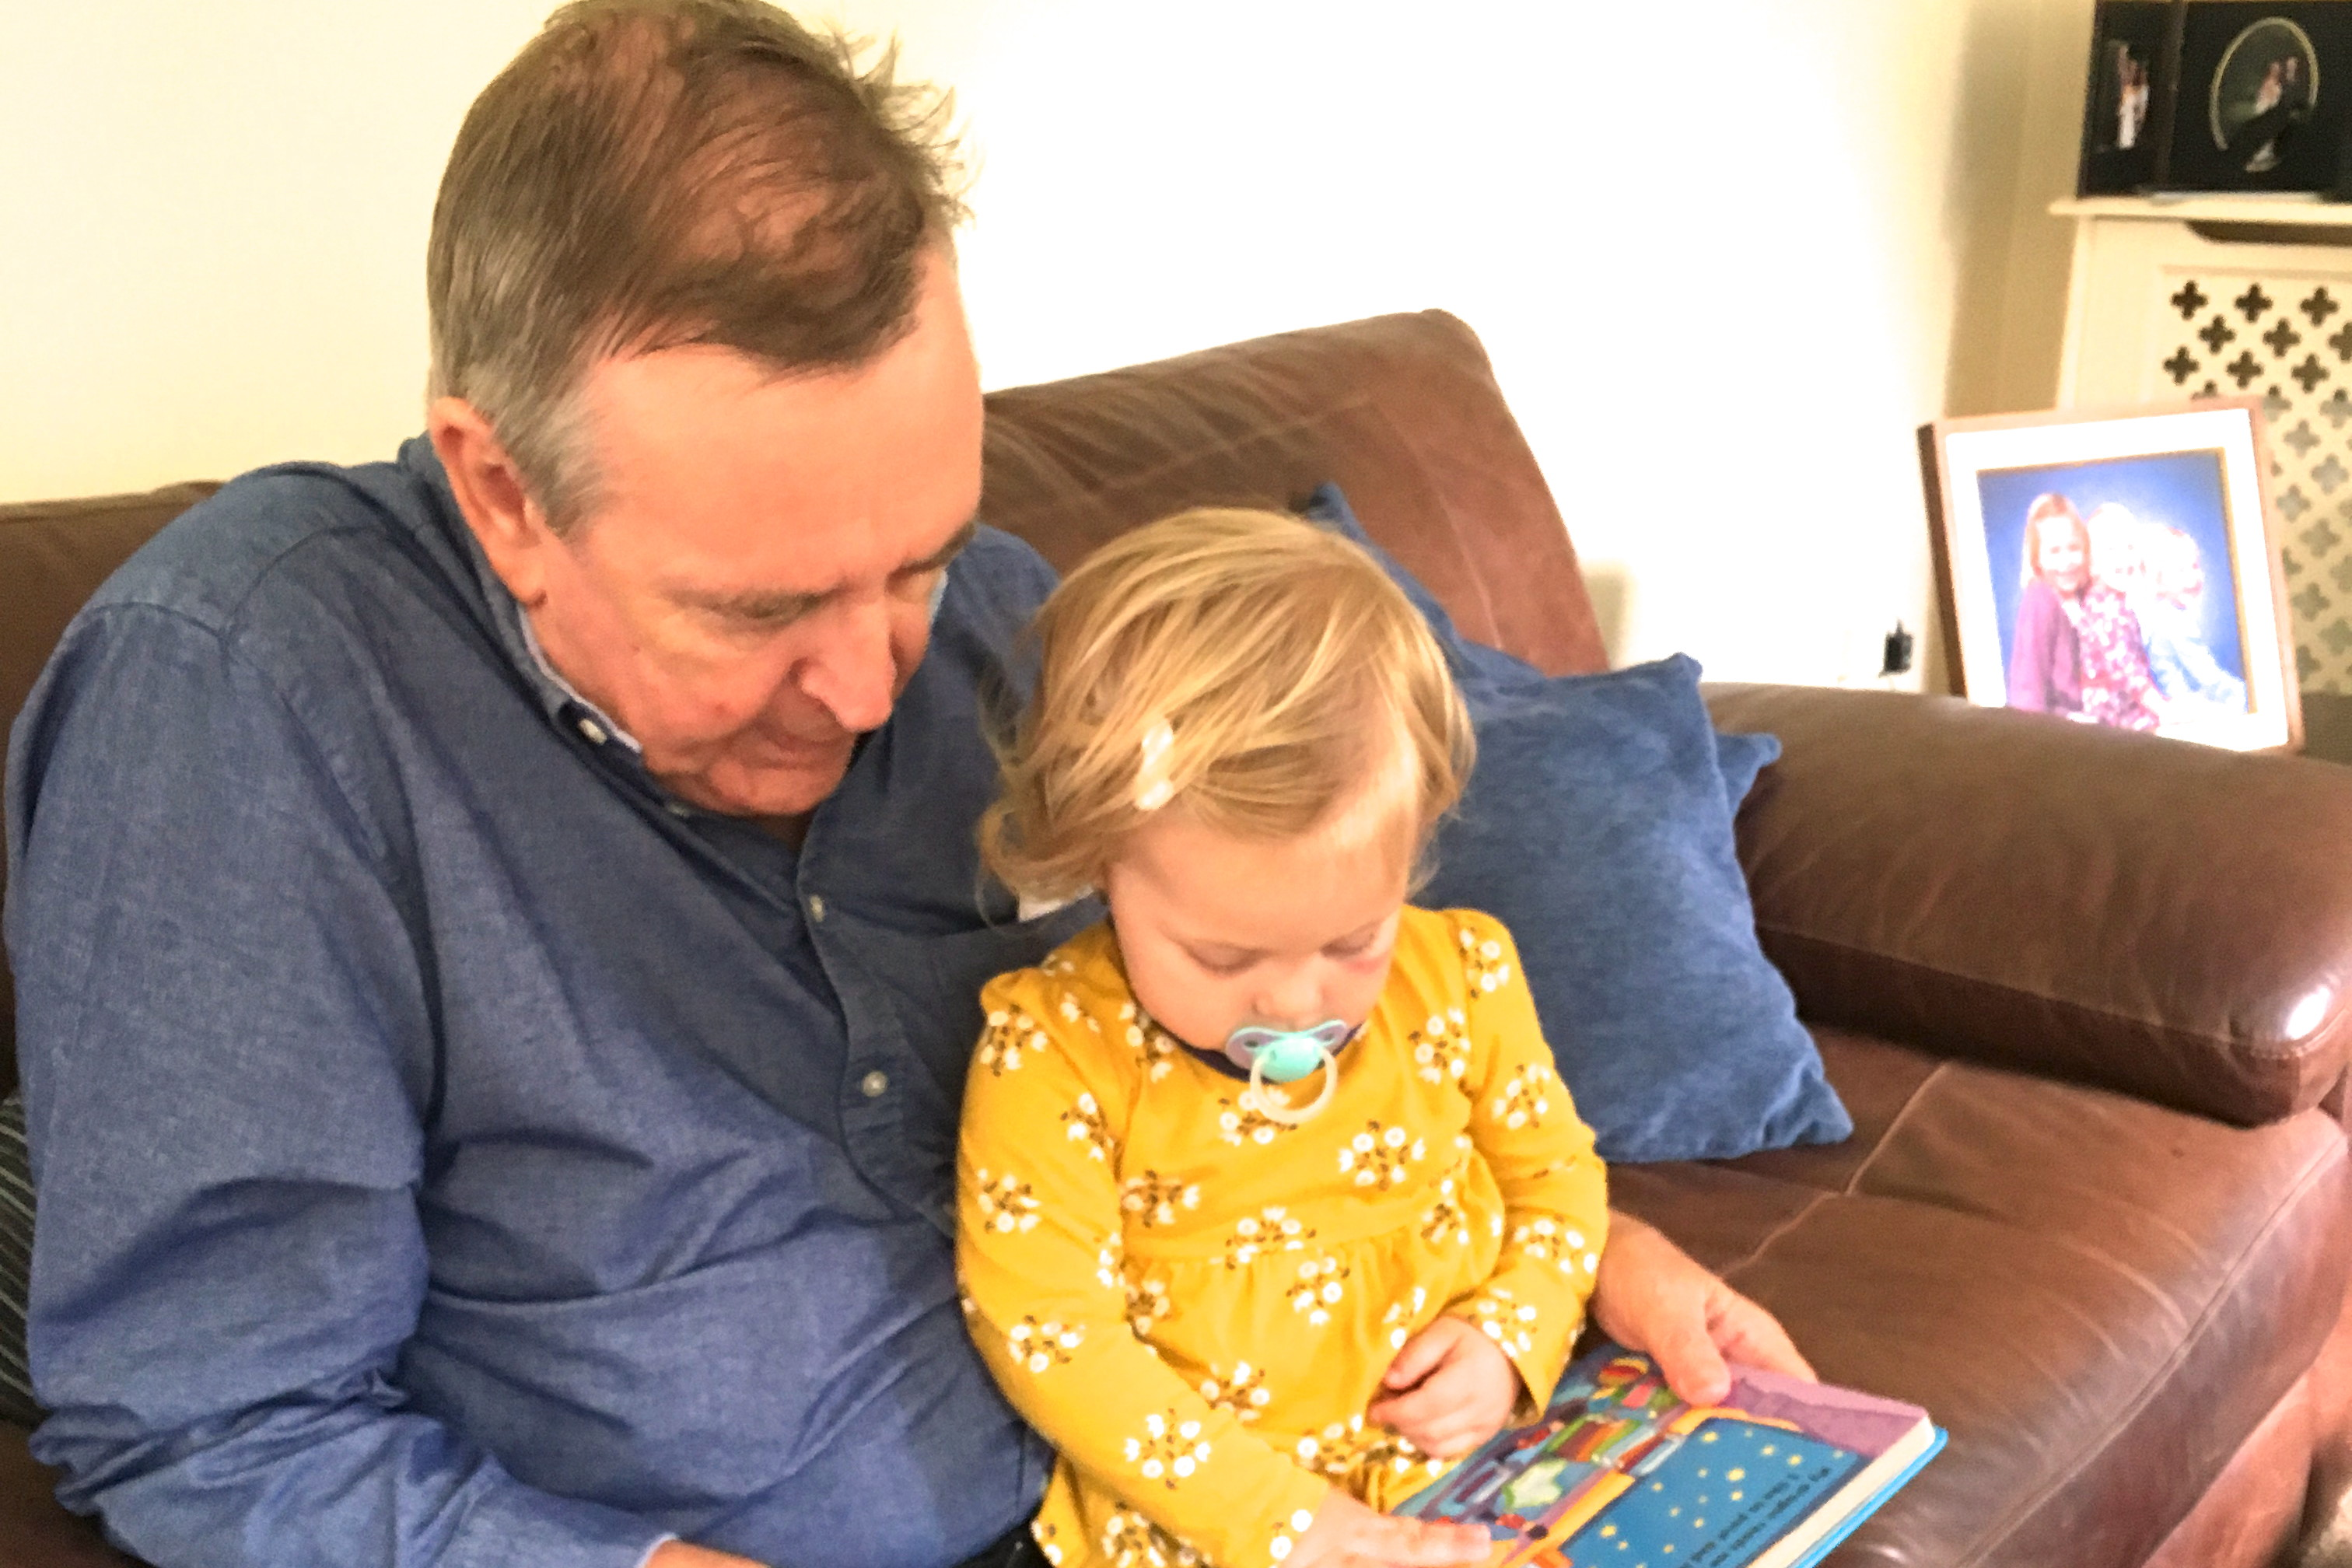 18 month old sitting on grandad's lap reading